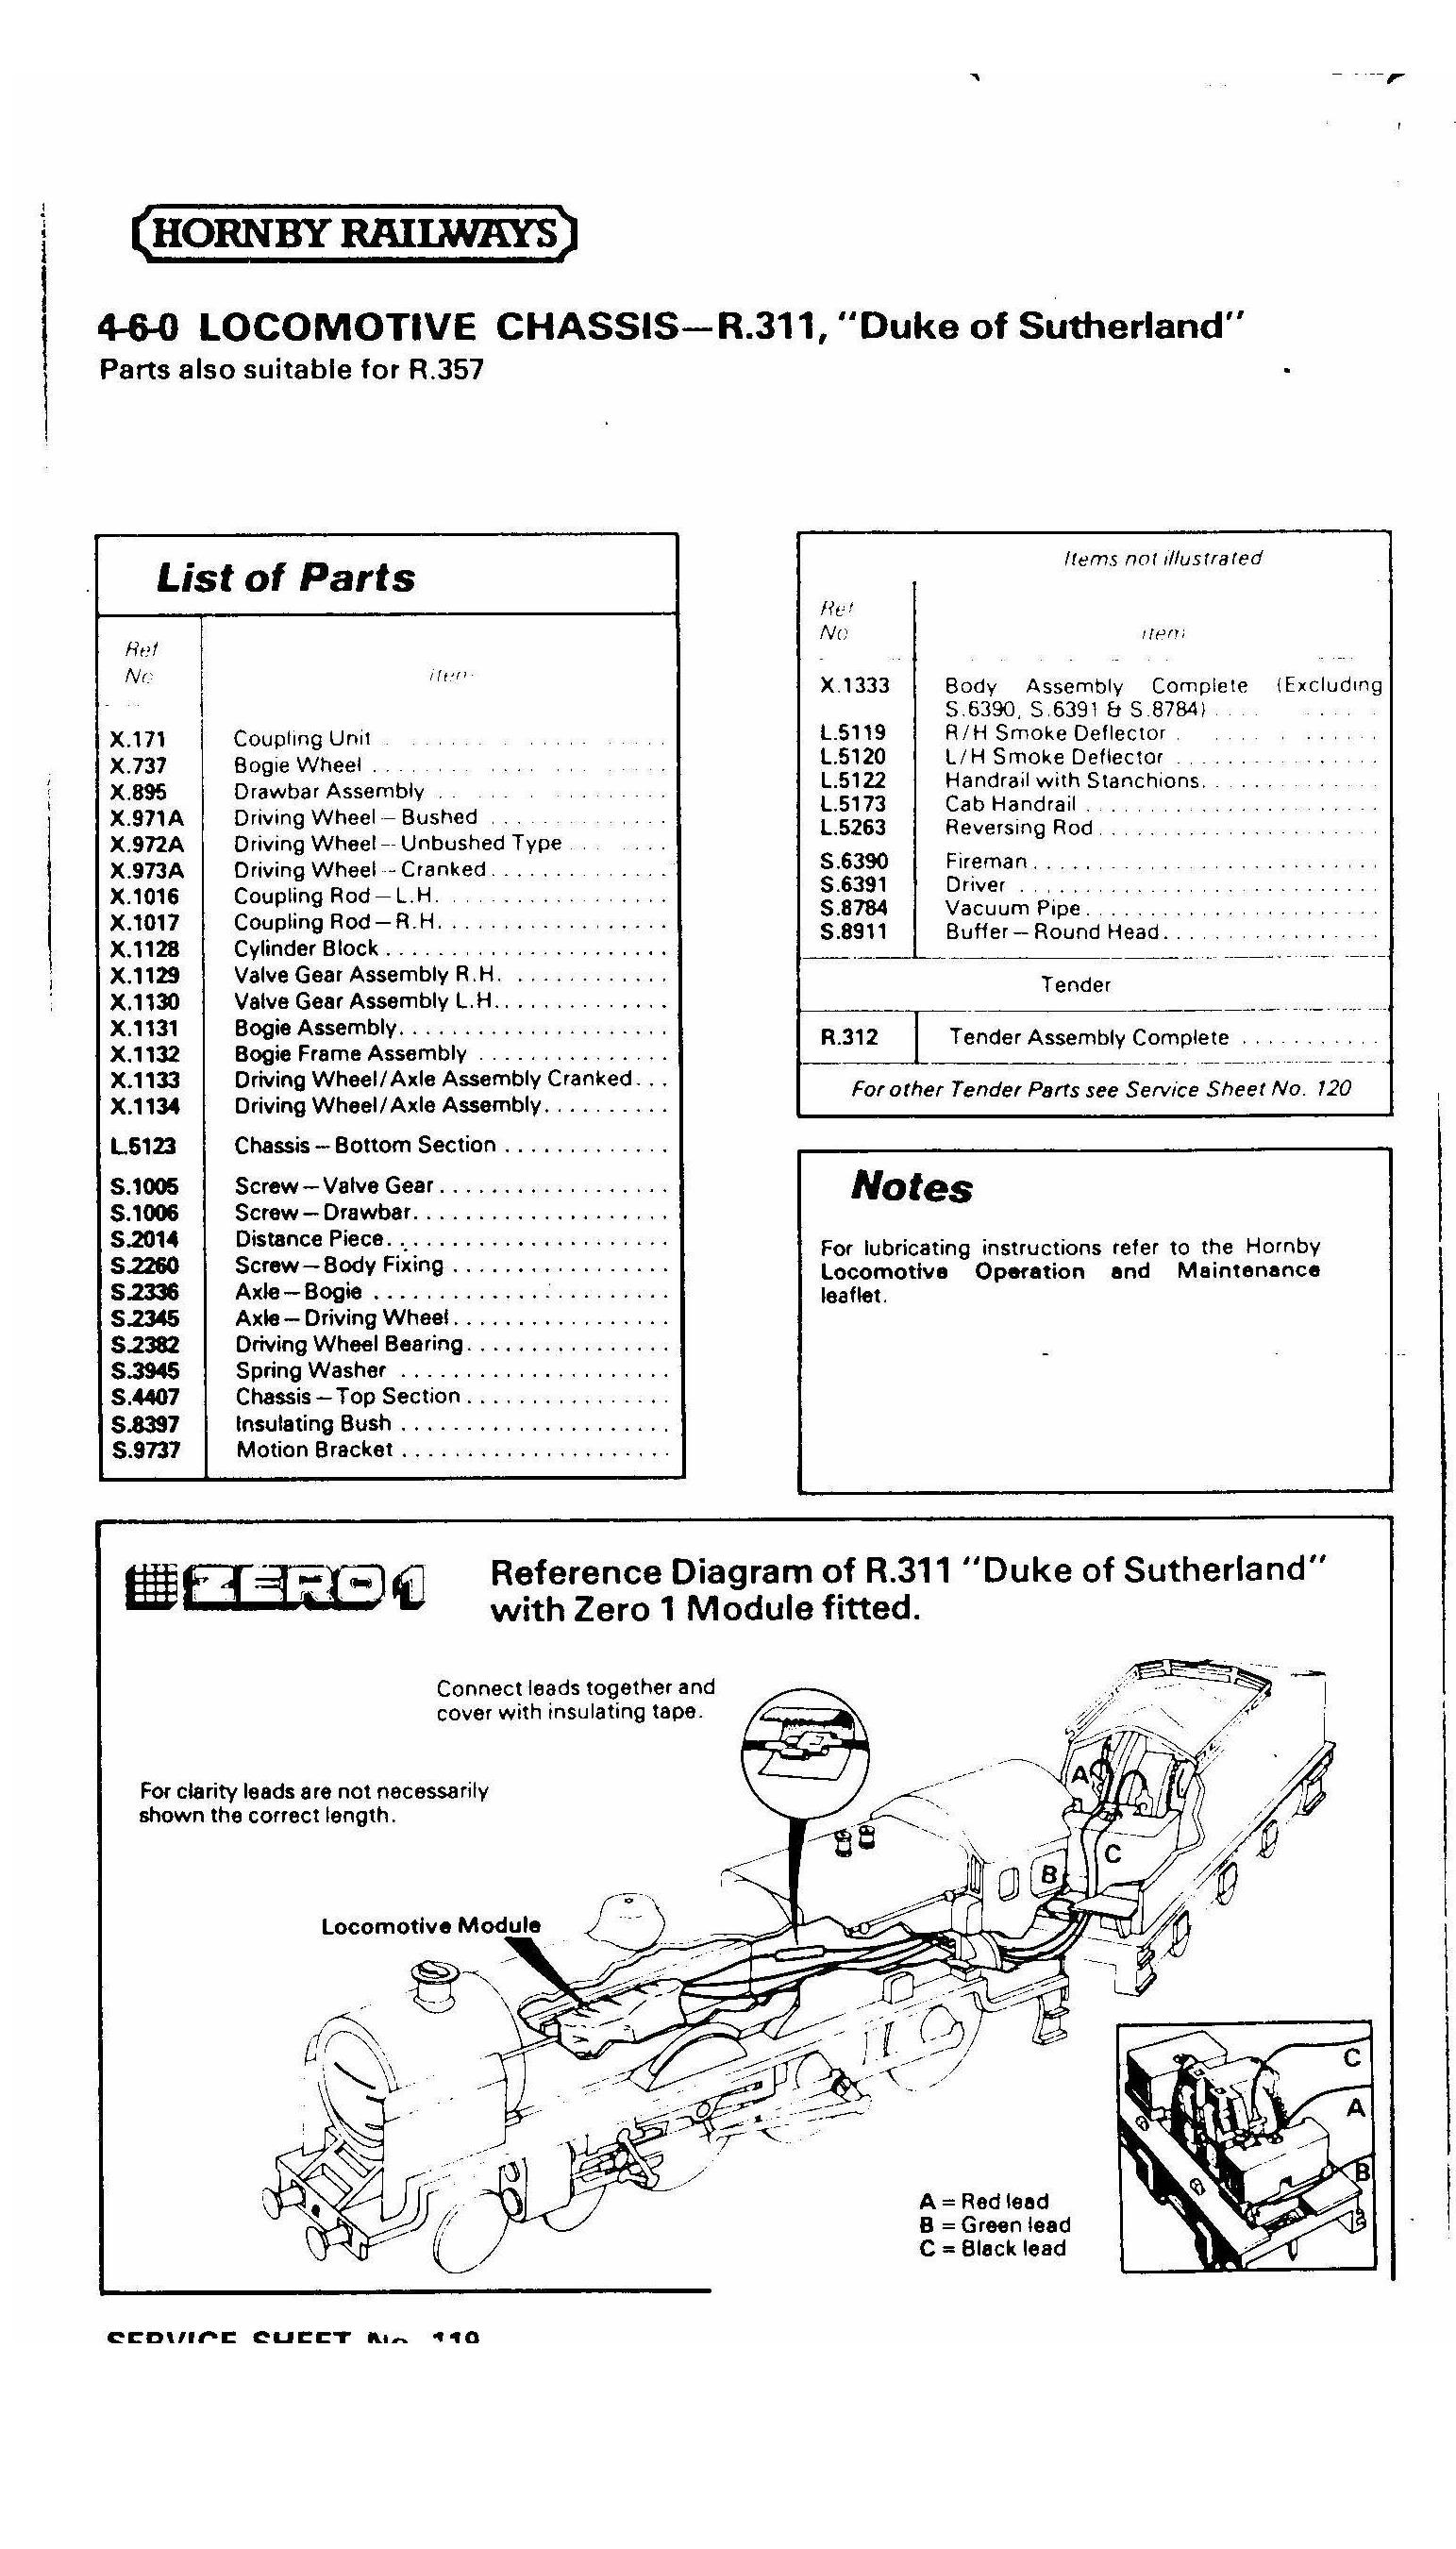 index of hornby service sheets